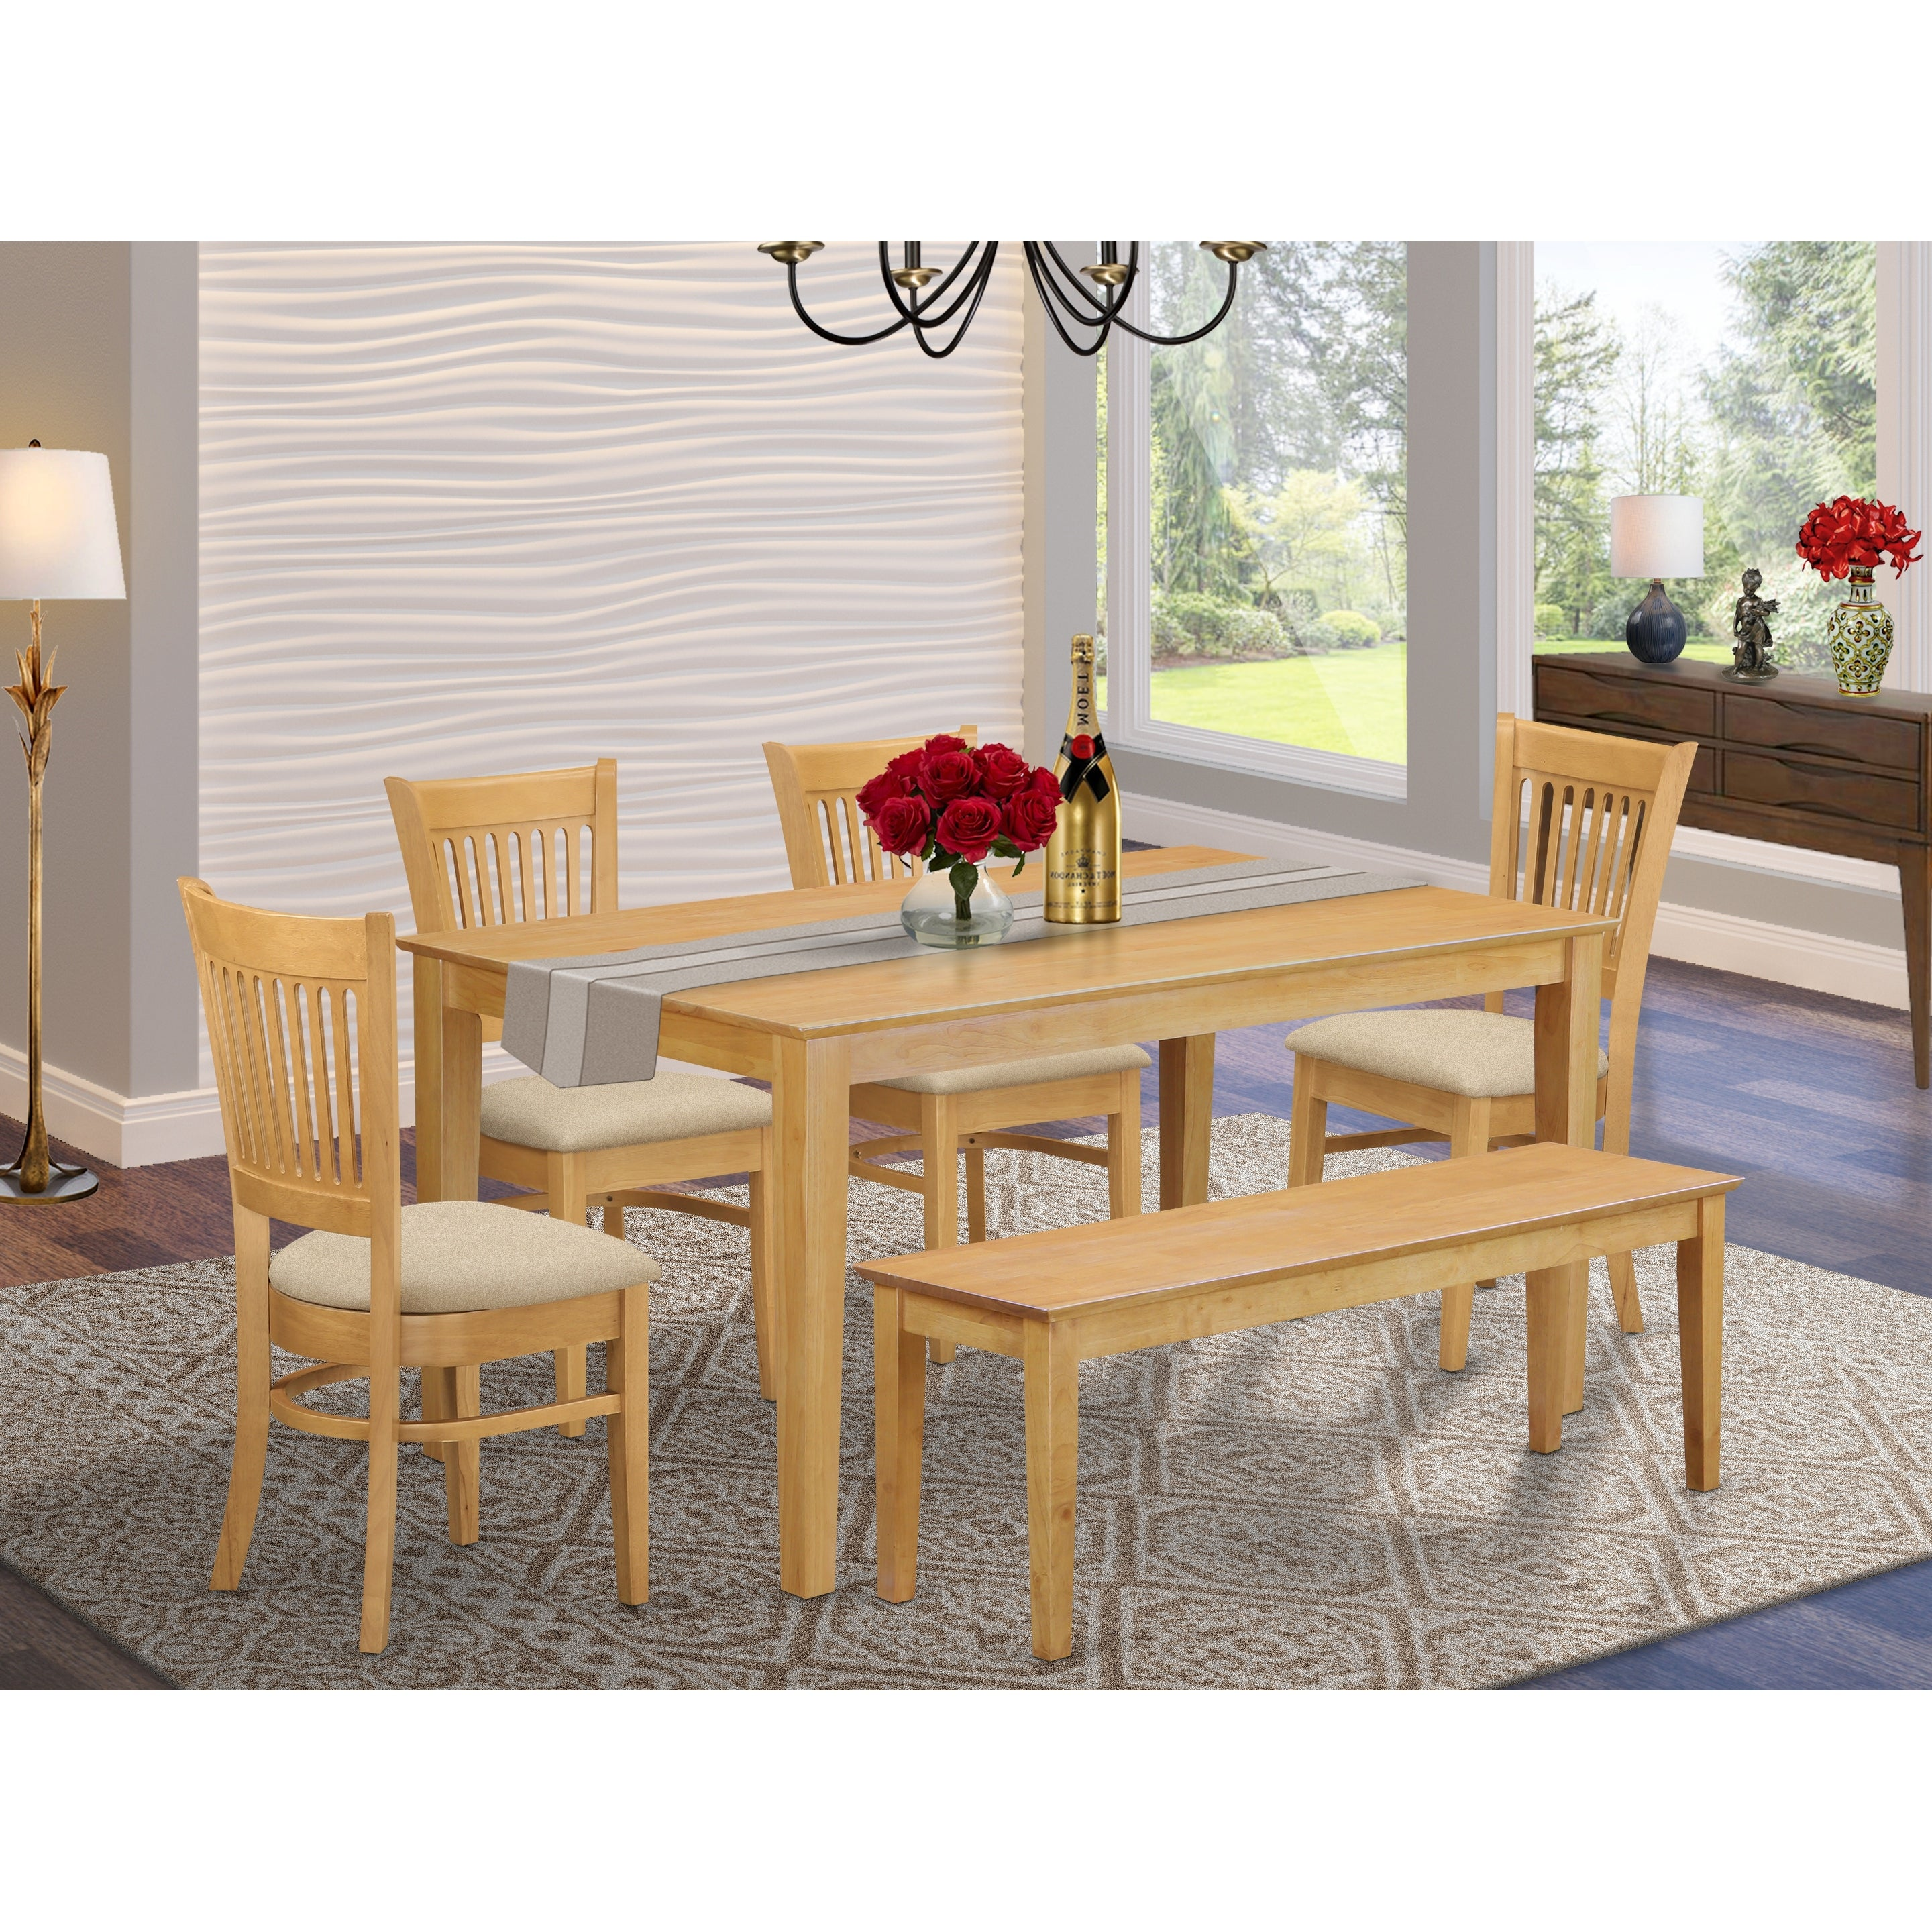 oak benches for dining room table